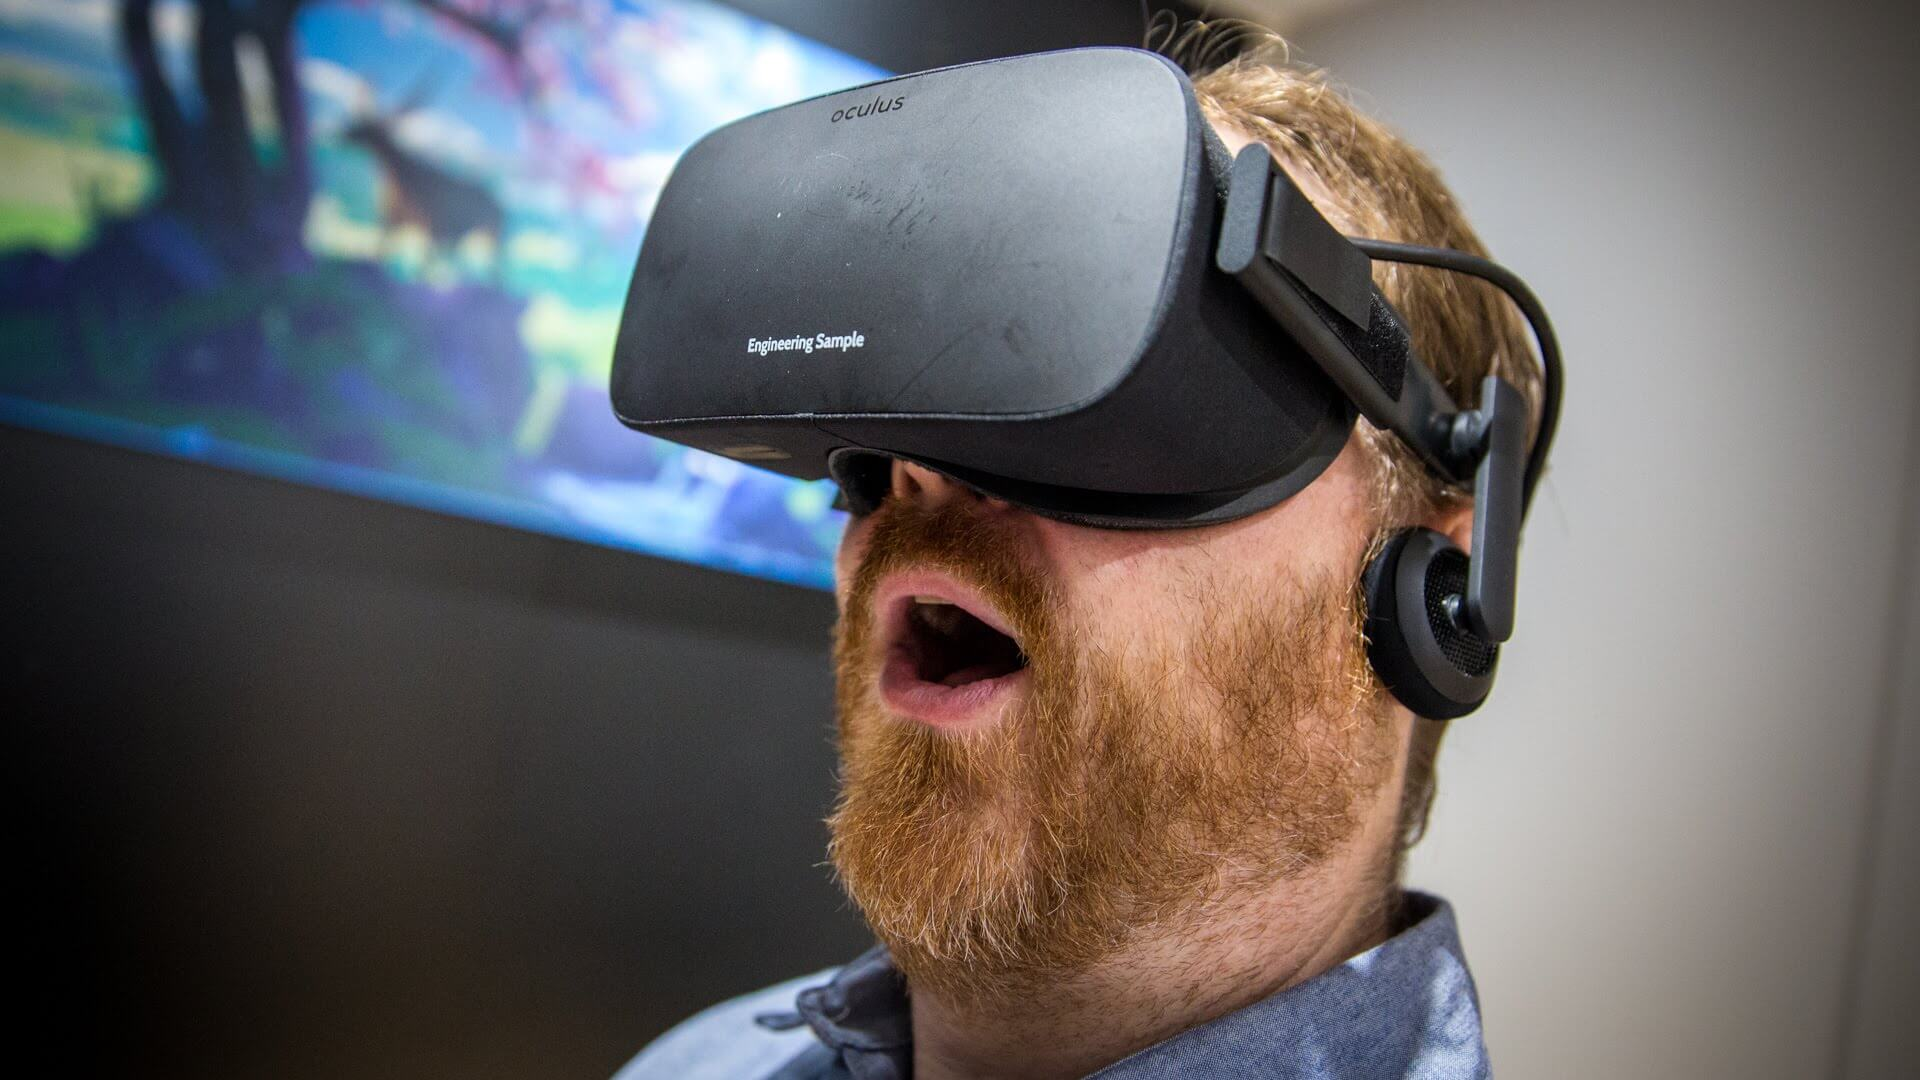 Oculus Rift To Be Released this Weekend